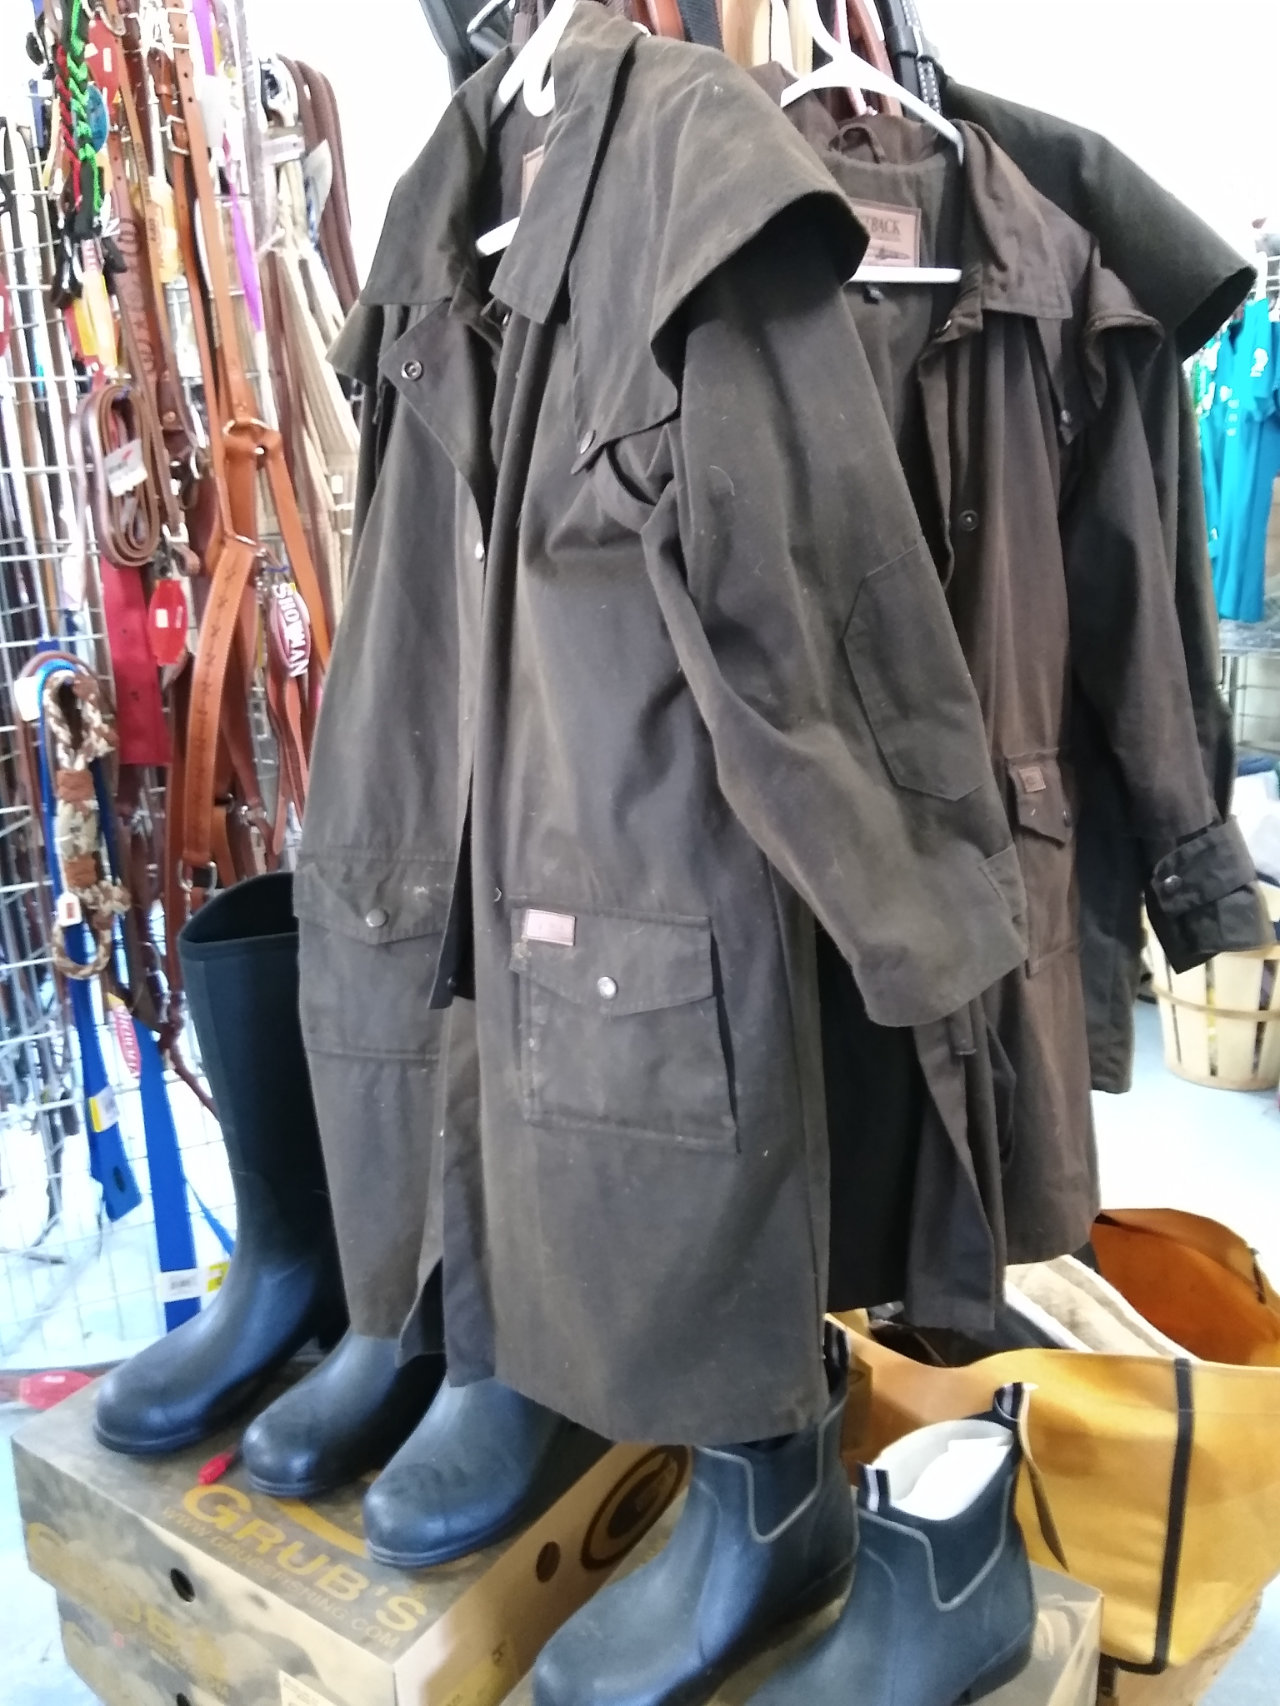 Outdoor clothing for riding horses, overcoat and boots